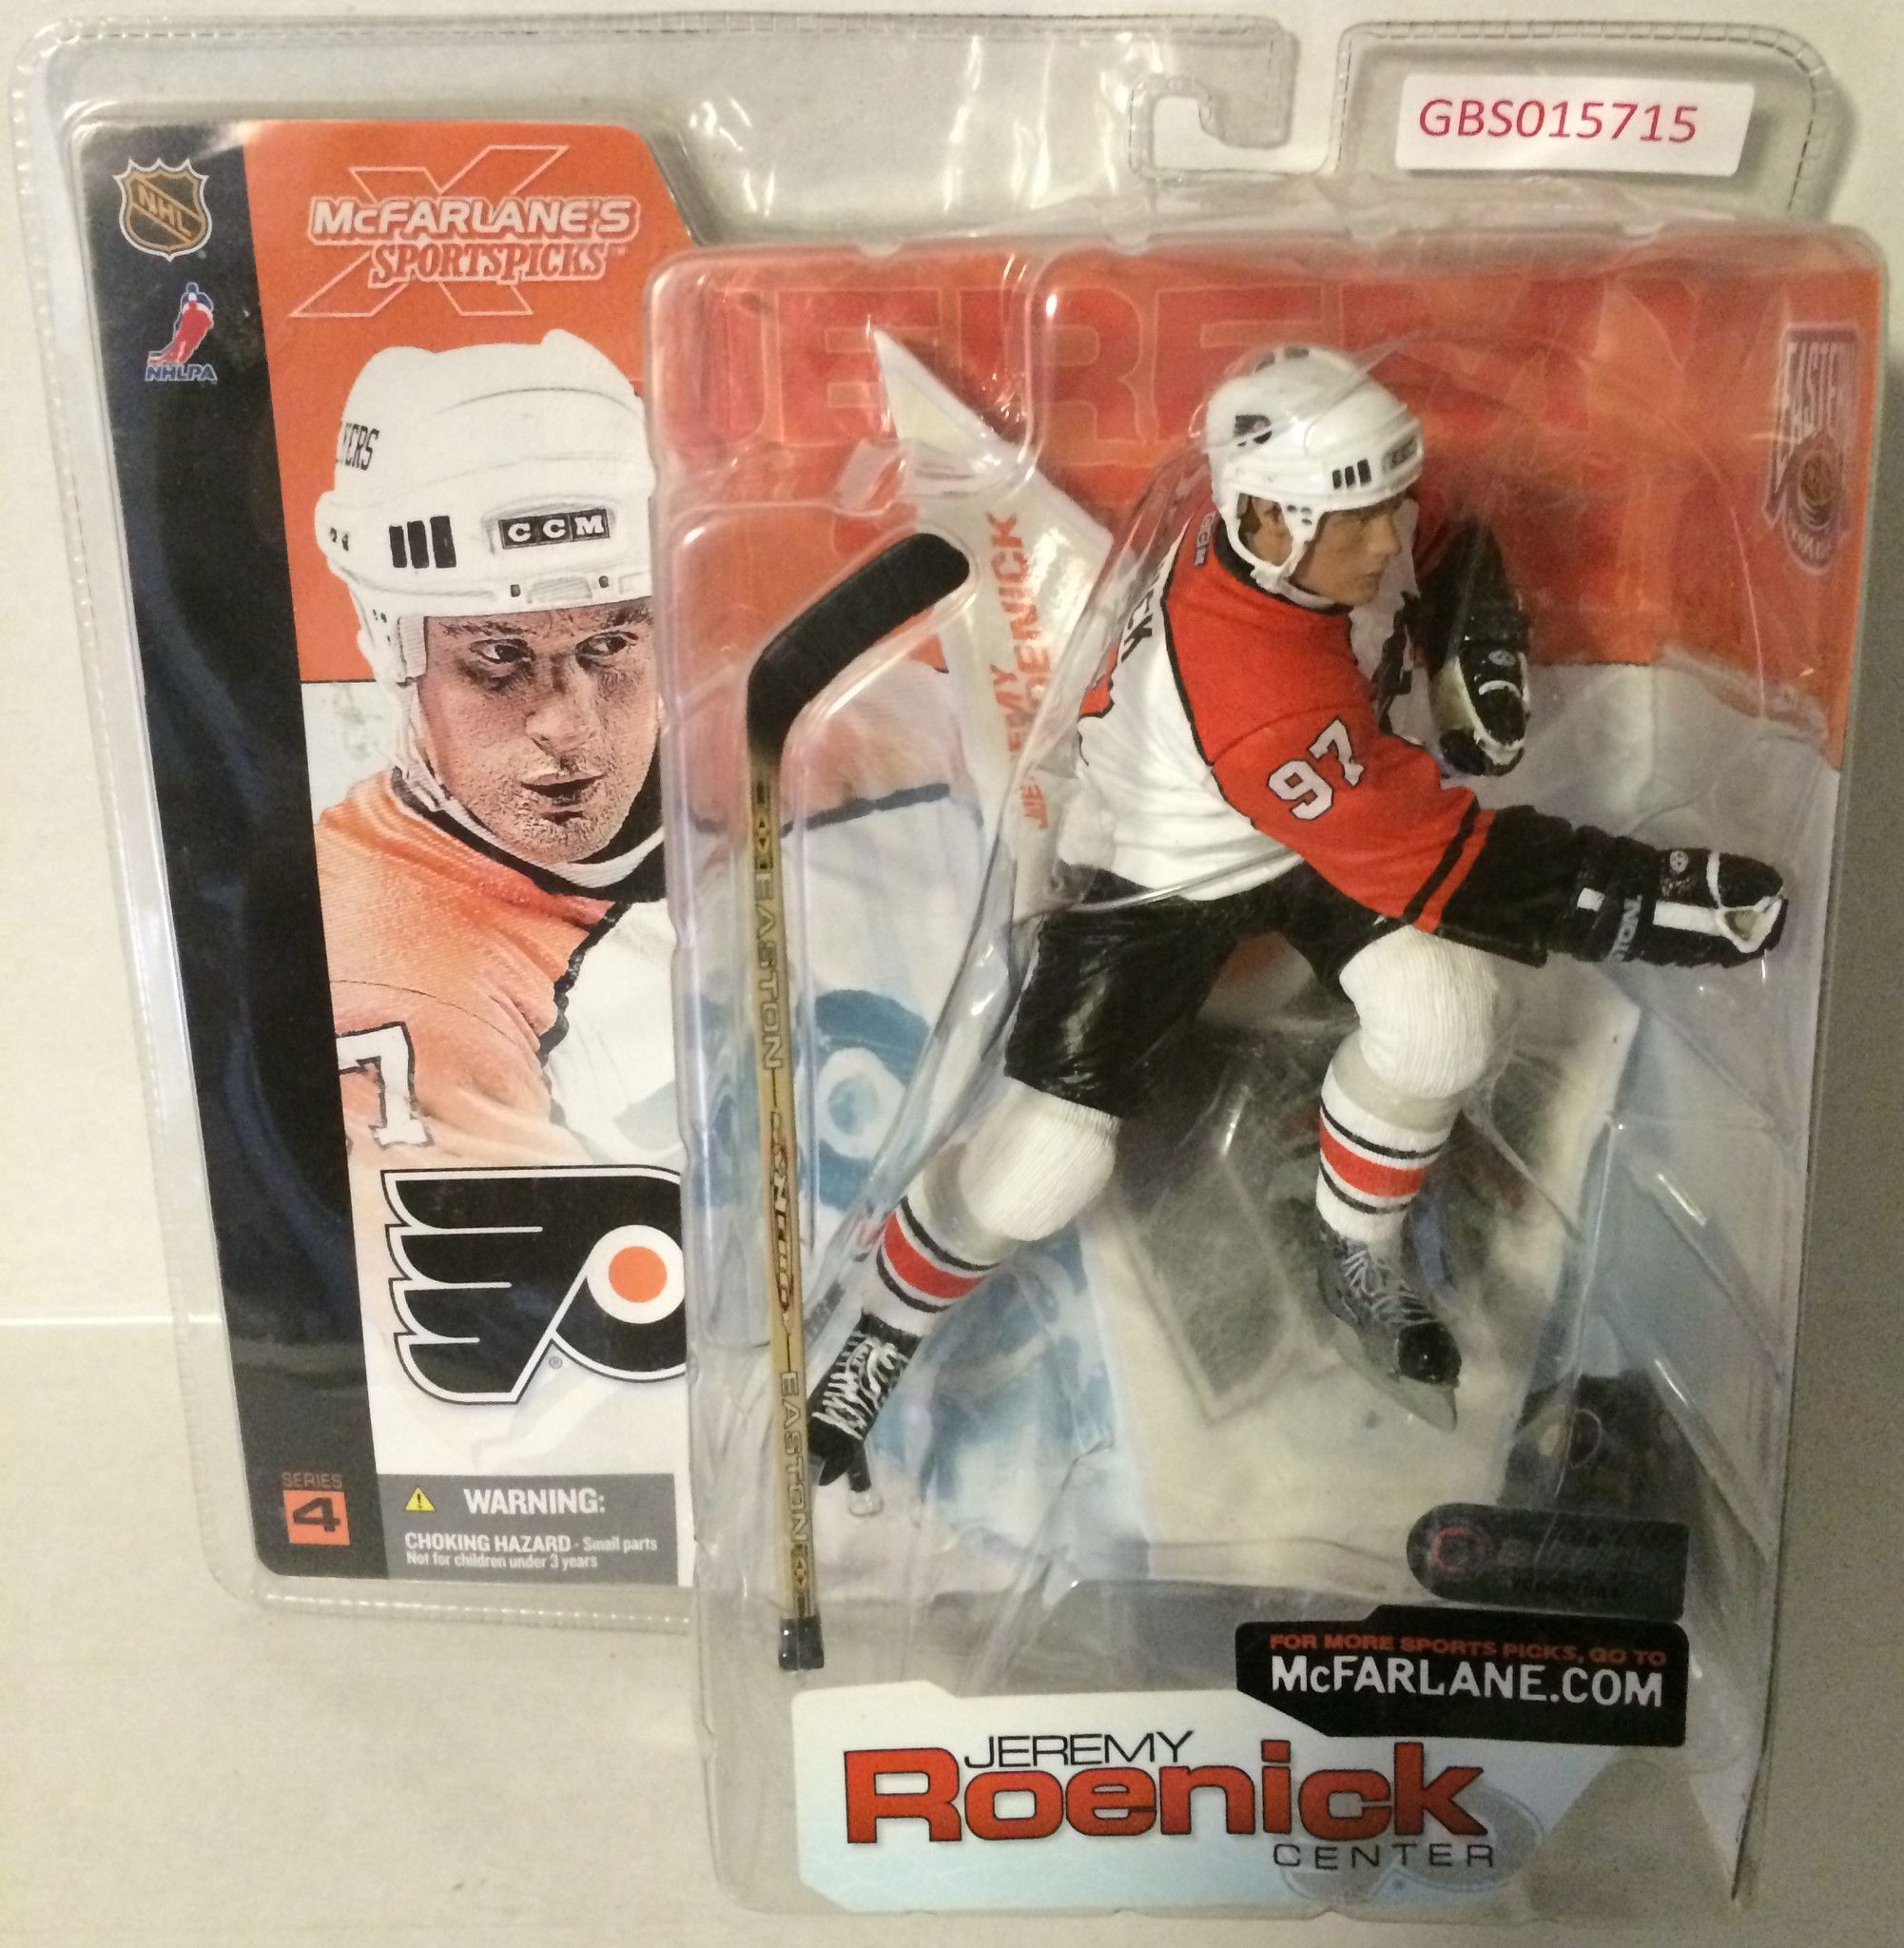 Tas032037 Mcfarlane Nhl Hockey Action Figure Jeremy Roenick Center Nhl Hockey Action Figures Hockey